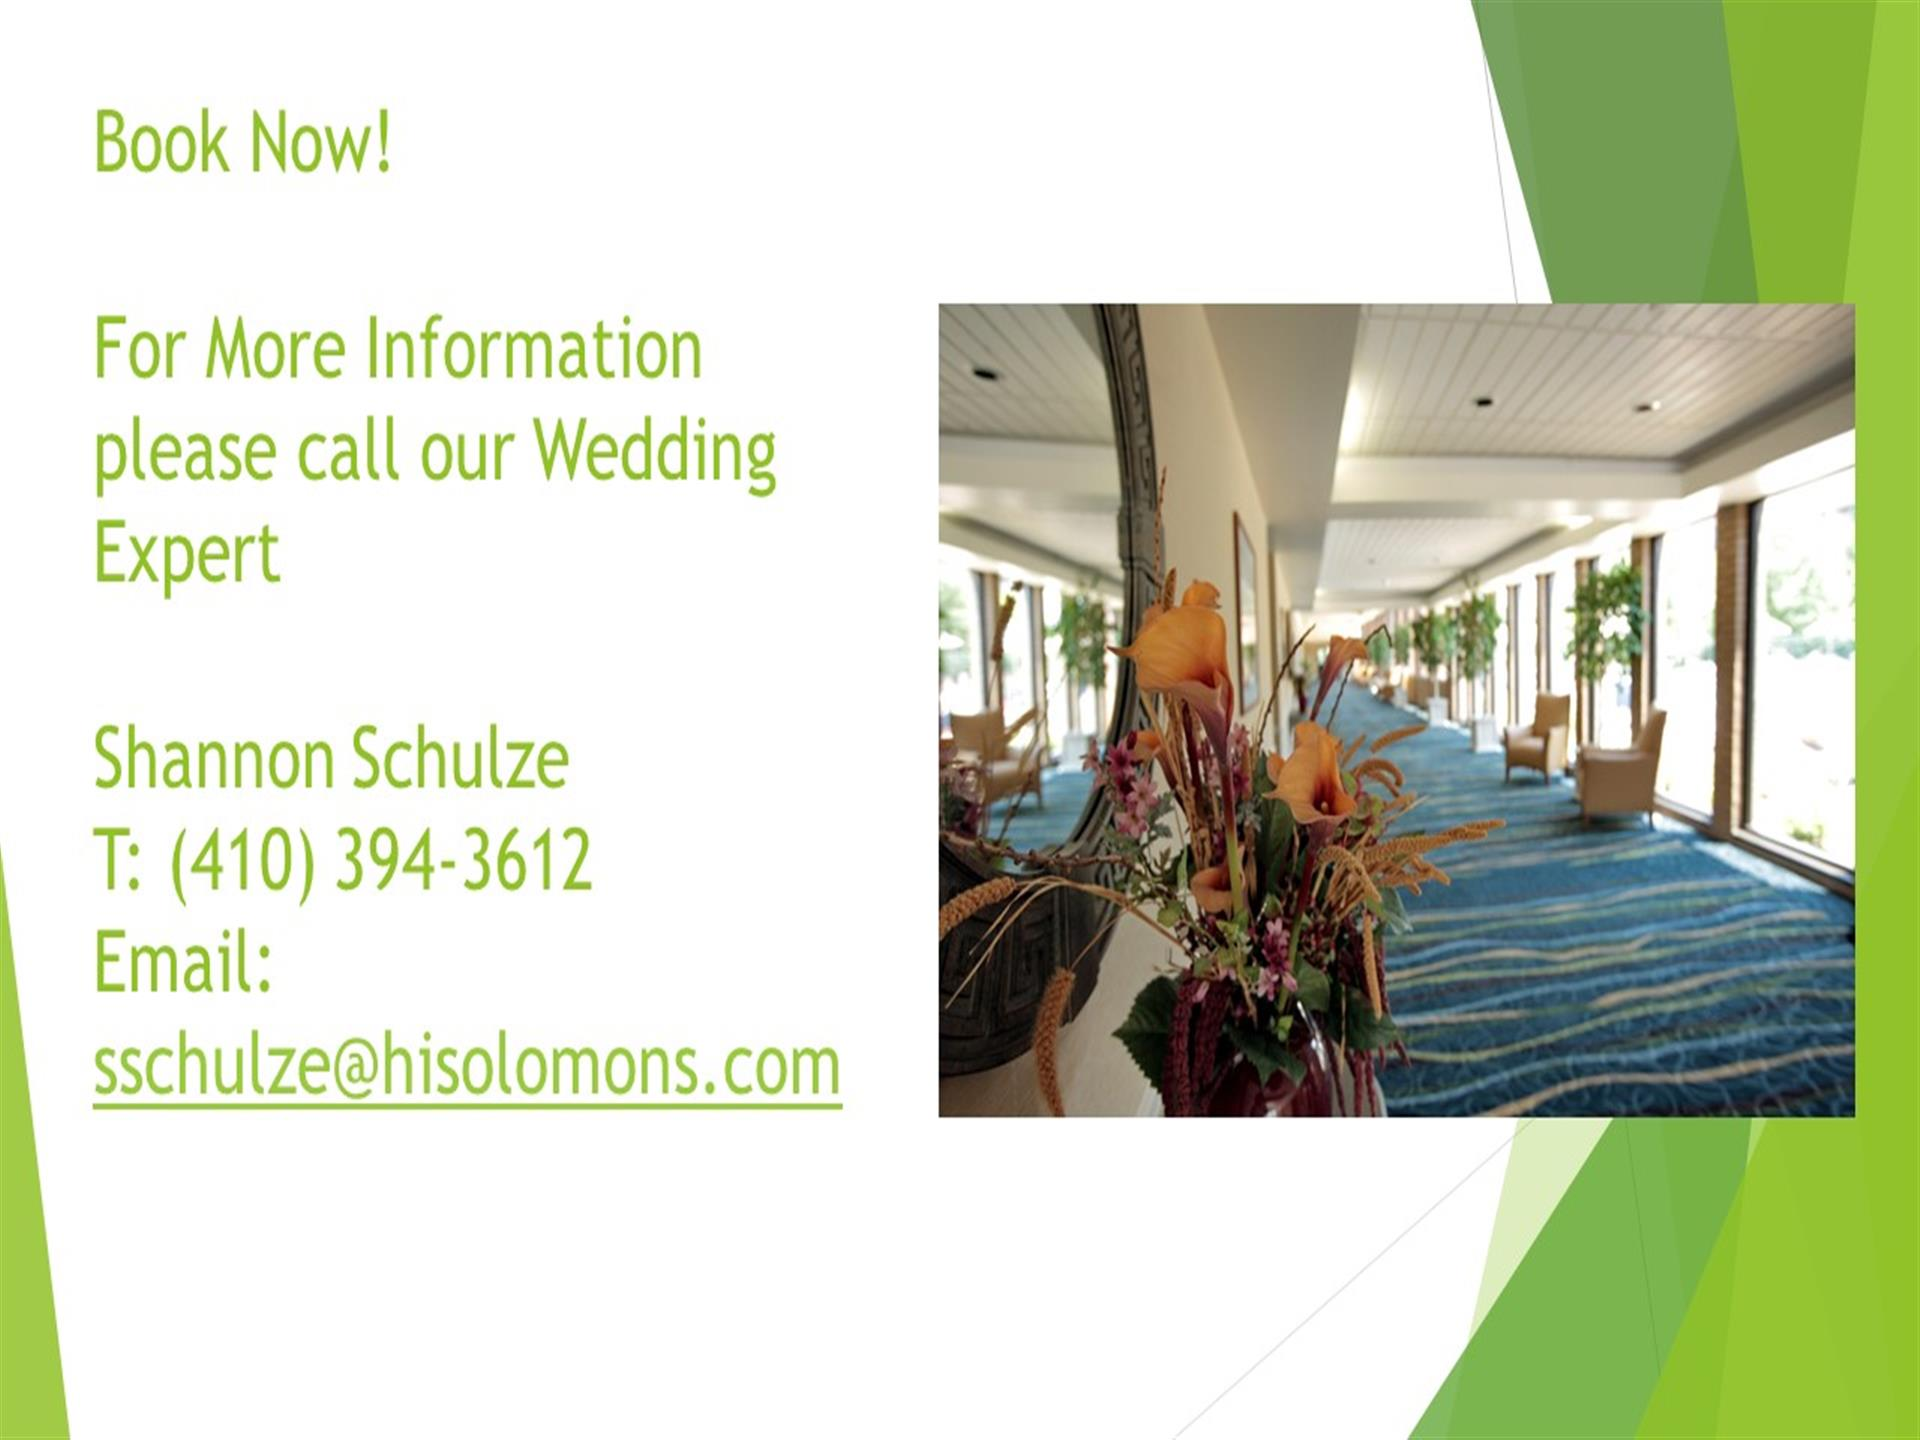 Book Now! Fore more information please call our weddihng expert Shannon Schulze. Telephone number (410) 394-3612. Email sschulze@hisolomons.com